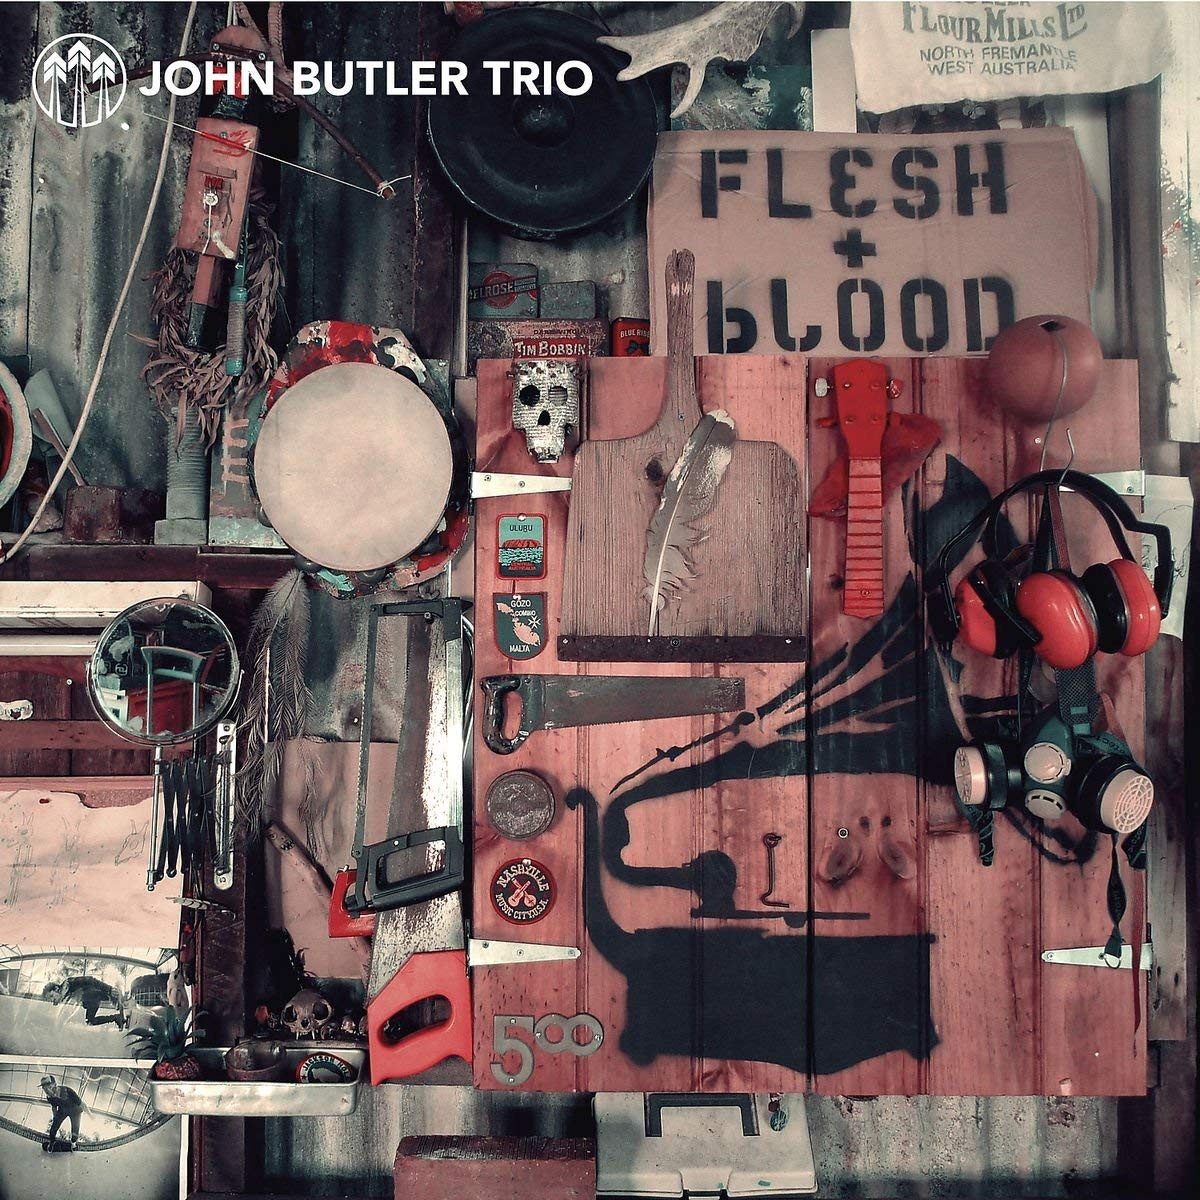 John Butler Trio 'Flesh + Blood' CD